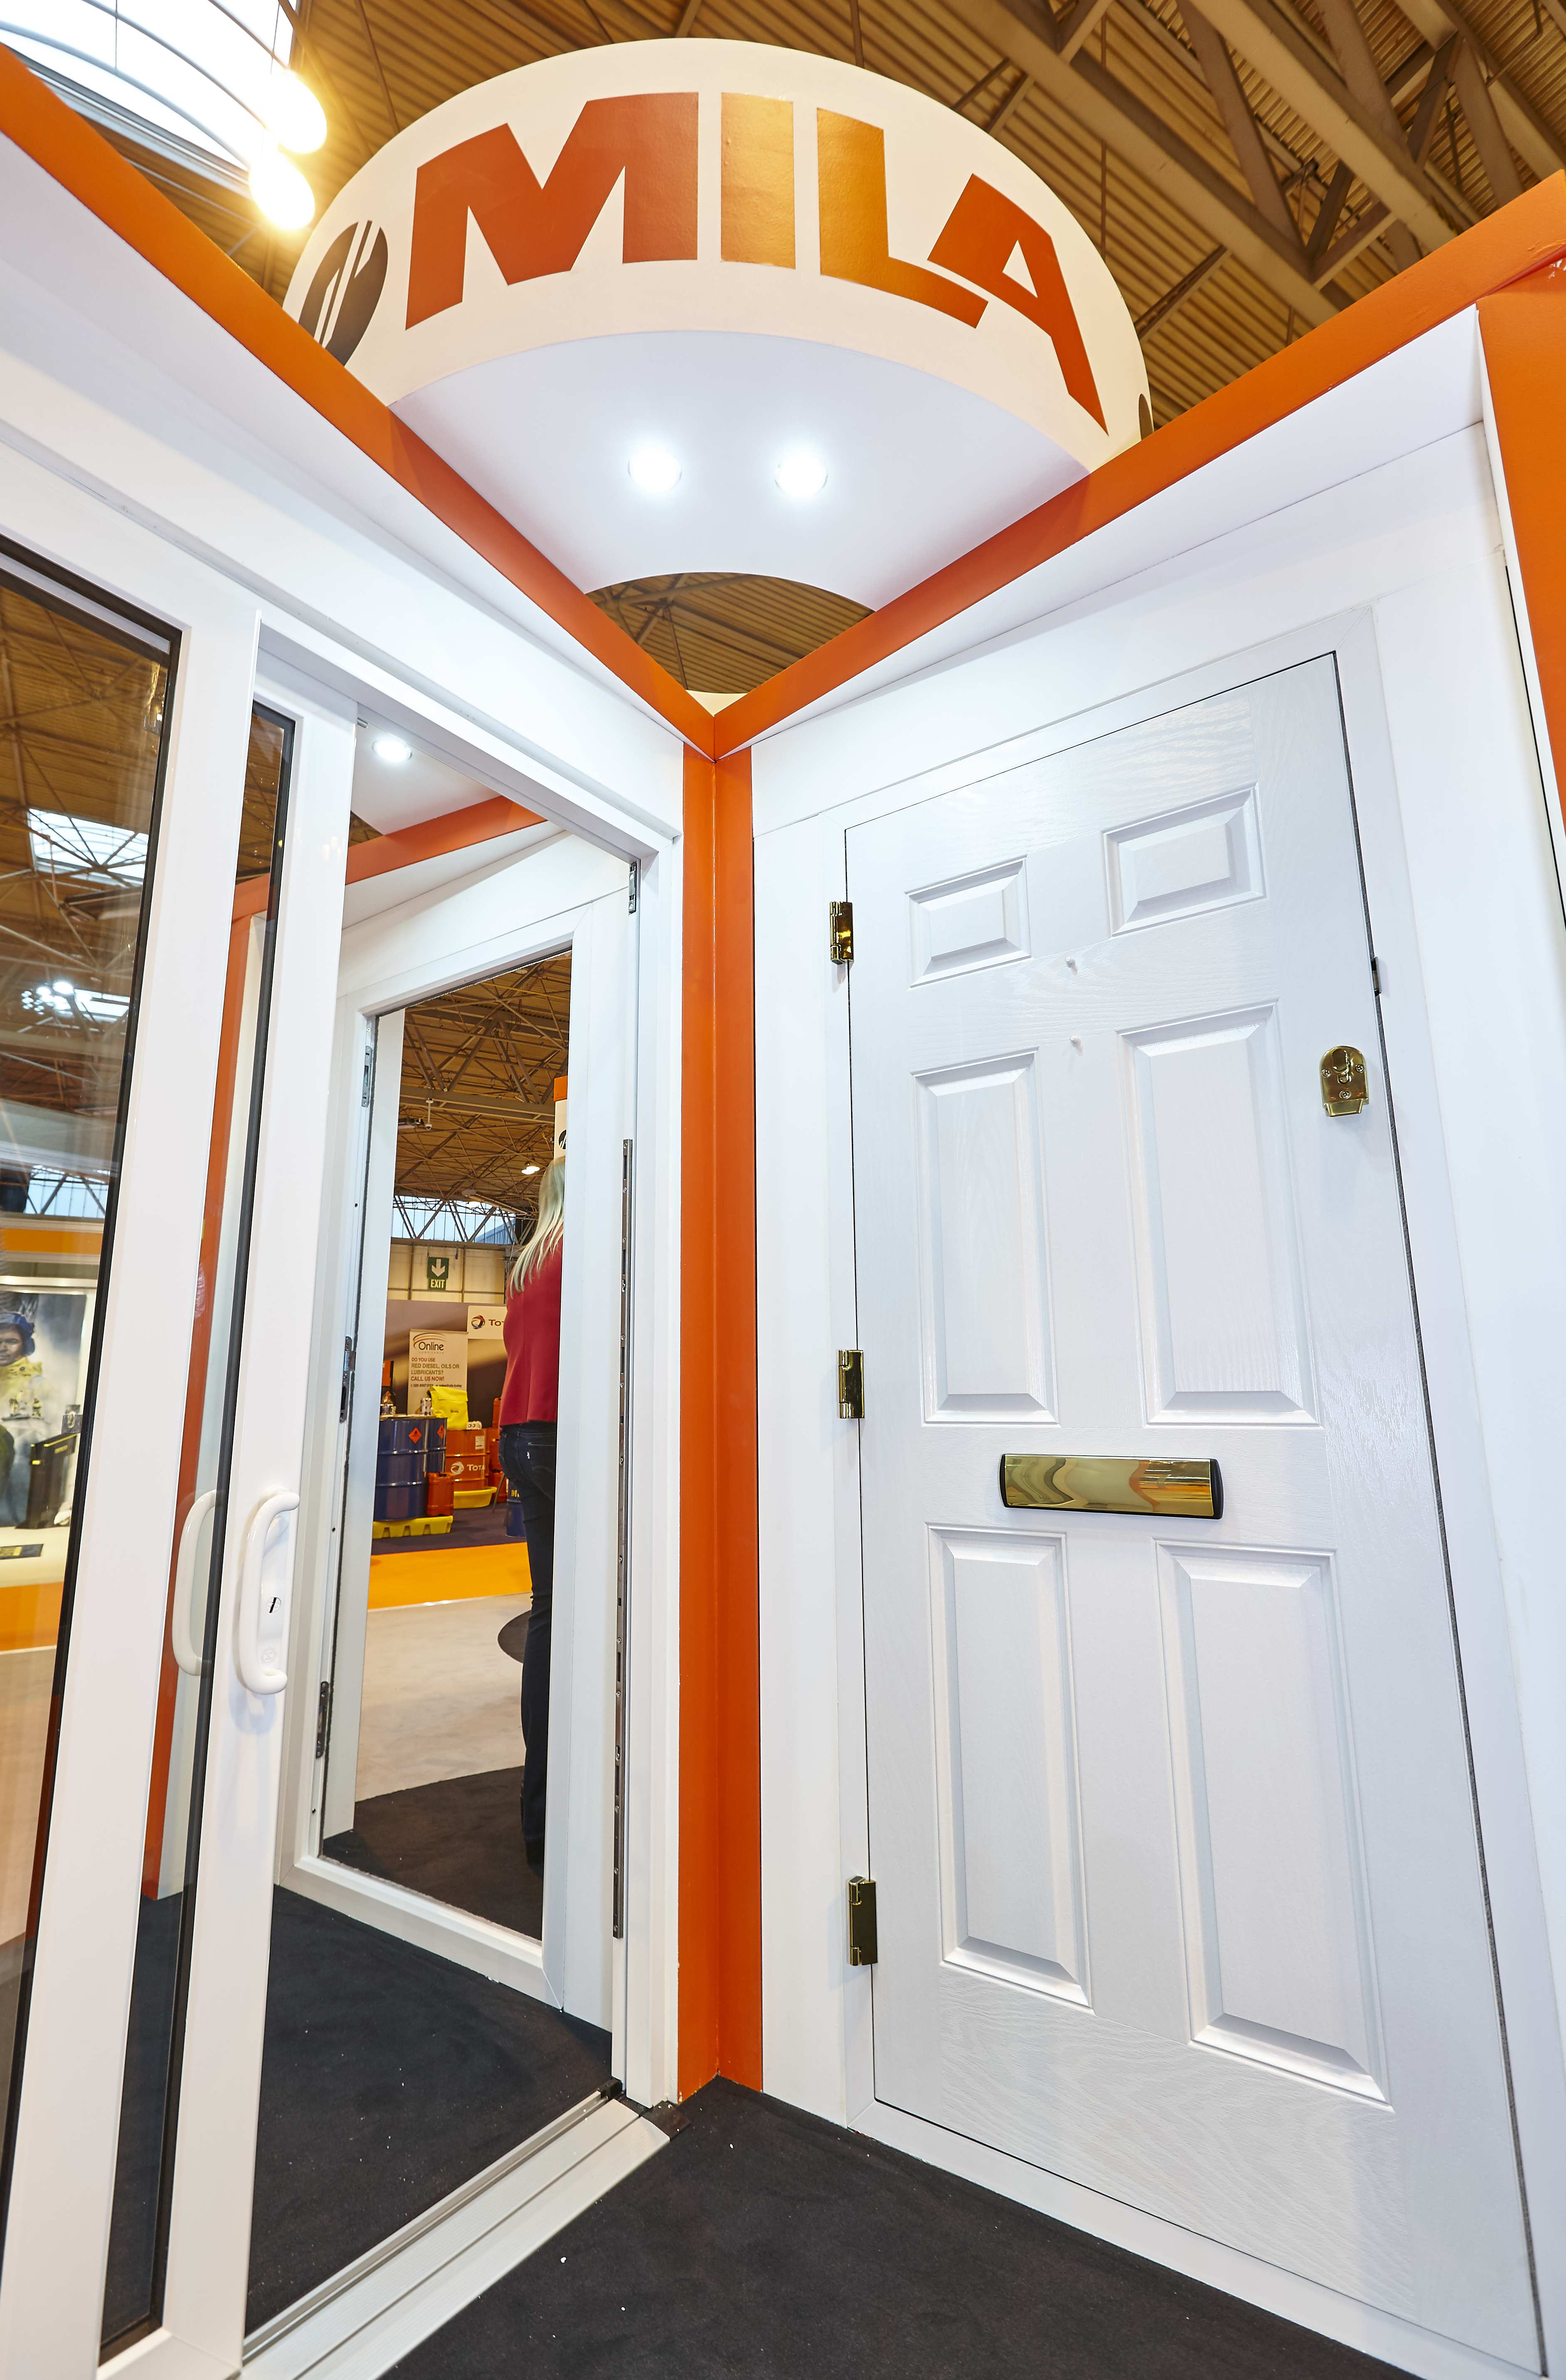 Eurocell brings patio door performance into 21st century mila build show oct 15 planetlyrics Image collections